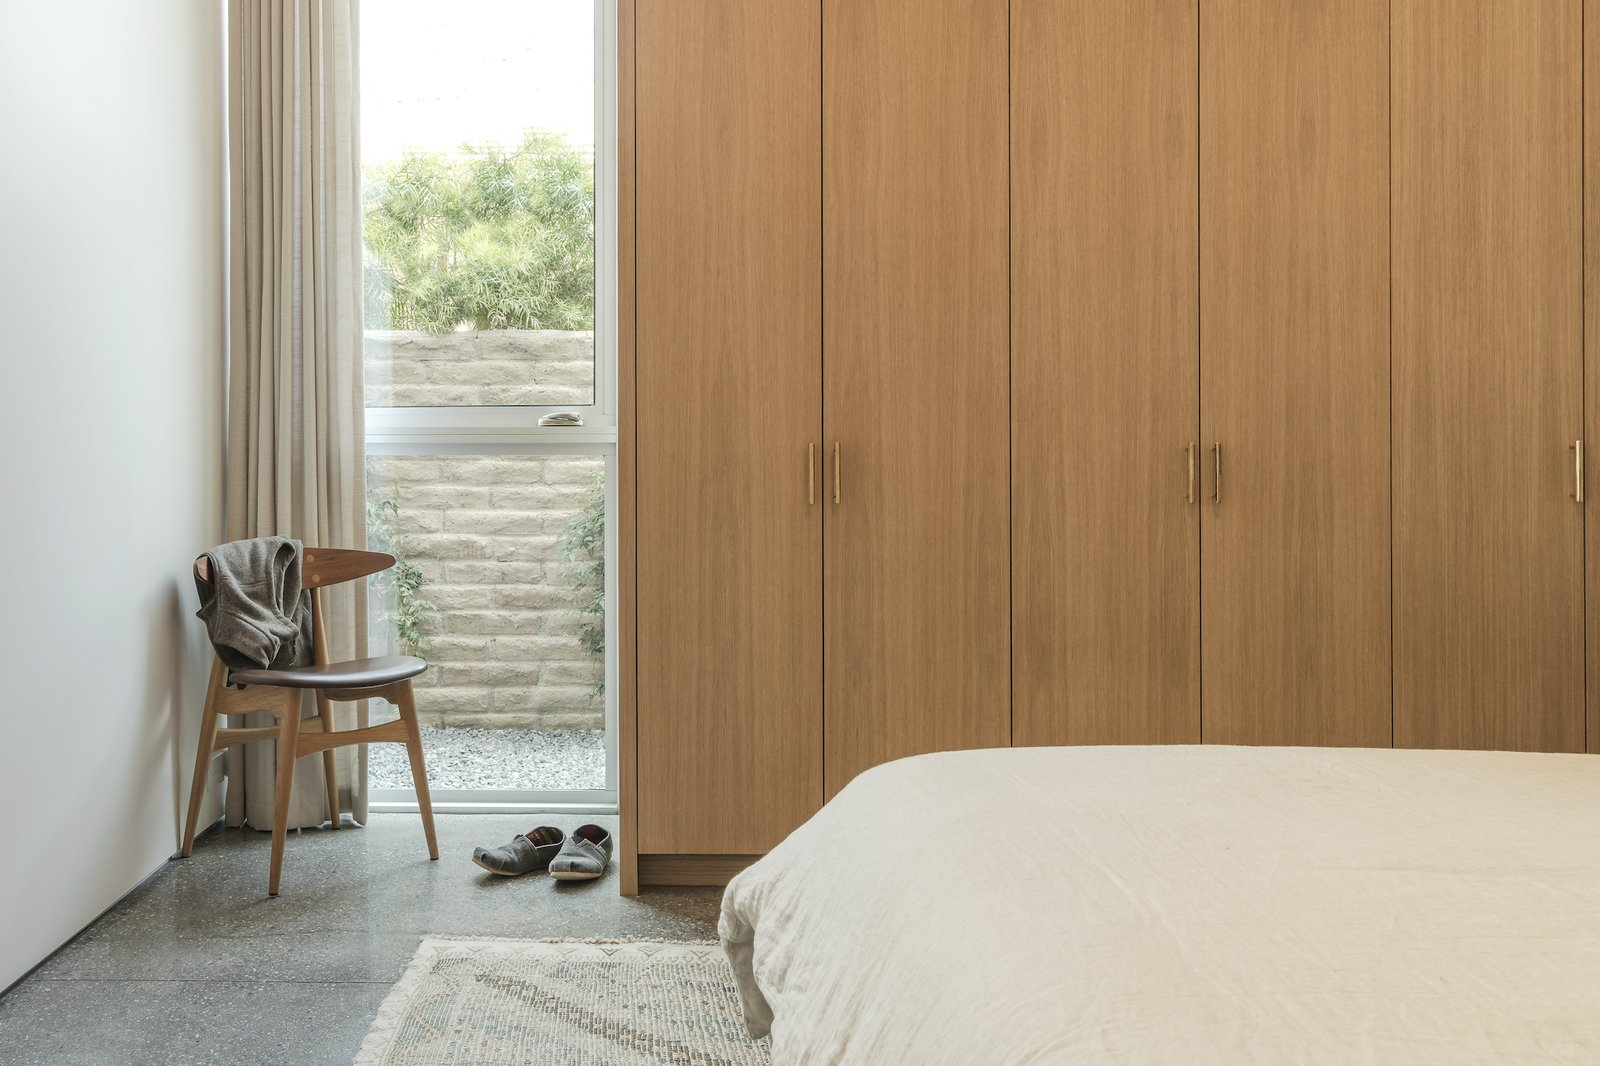 Guest bedroom at Culver City Case Study House by Woods + Dangaran.